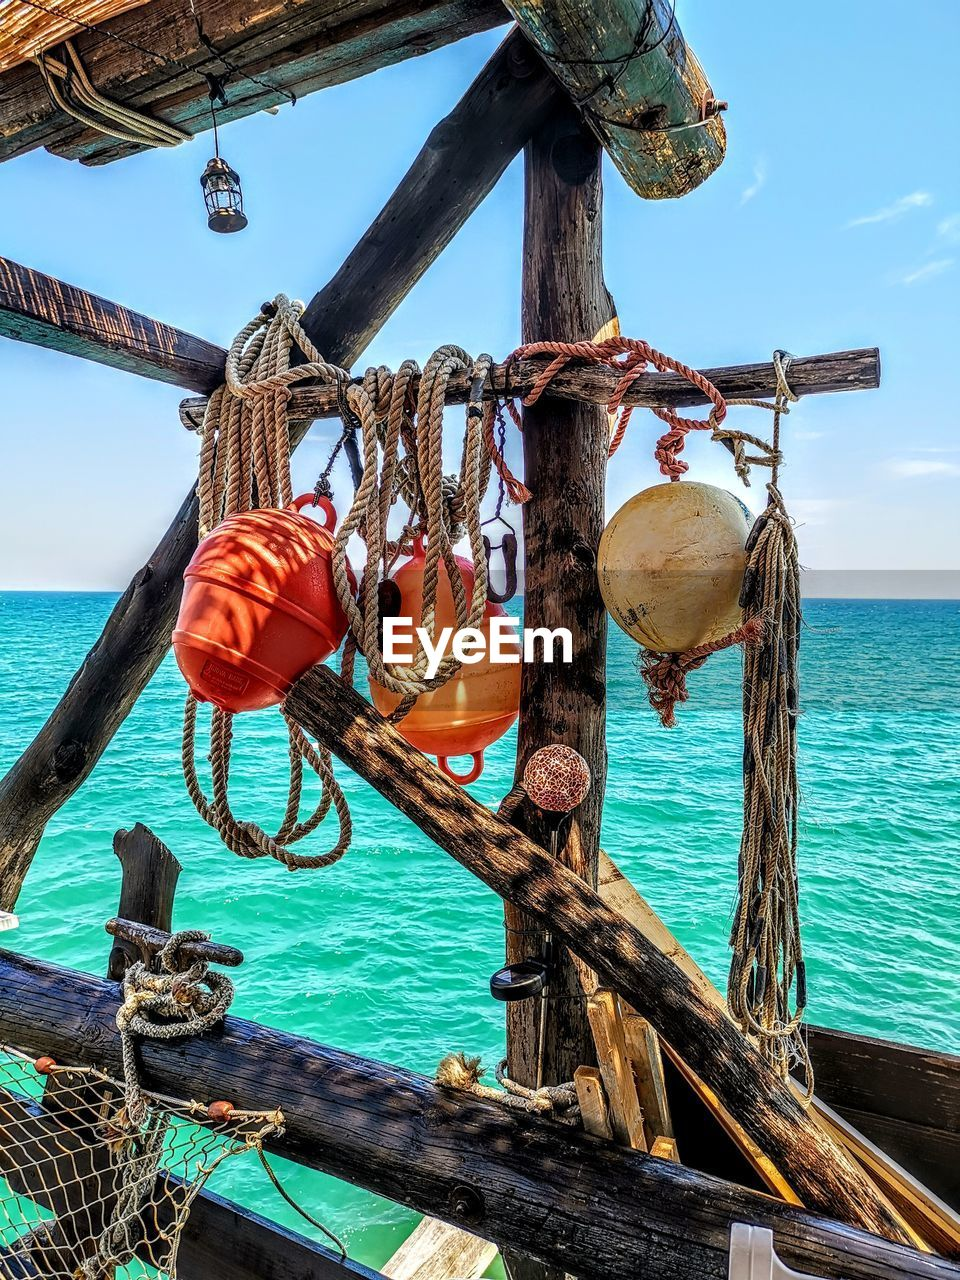 water, sea, sky, nature, wood - material, nautical vessel, day, horizon, horizon over water, transportation, rope, outdoors, no people, sunlight, beauty in nature, hanging, scenics - nature, mode of transportation, land, wooden post, fishing industry